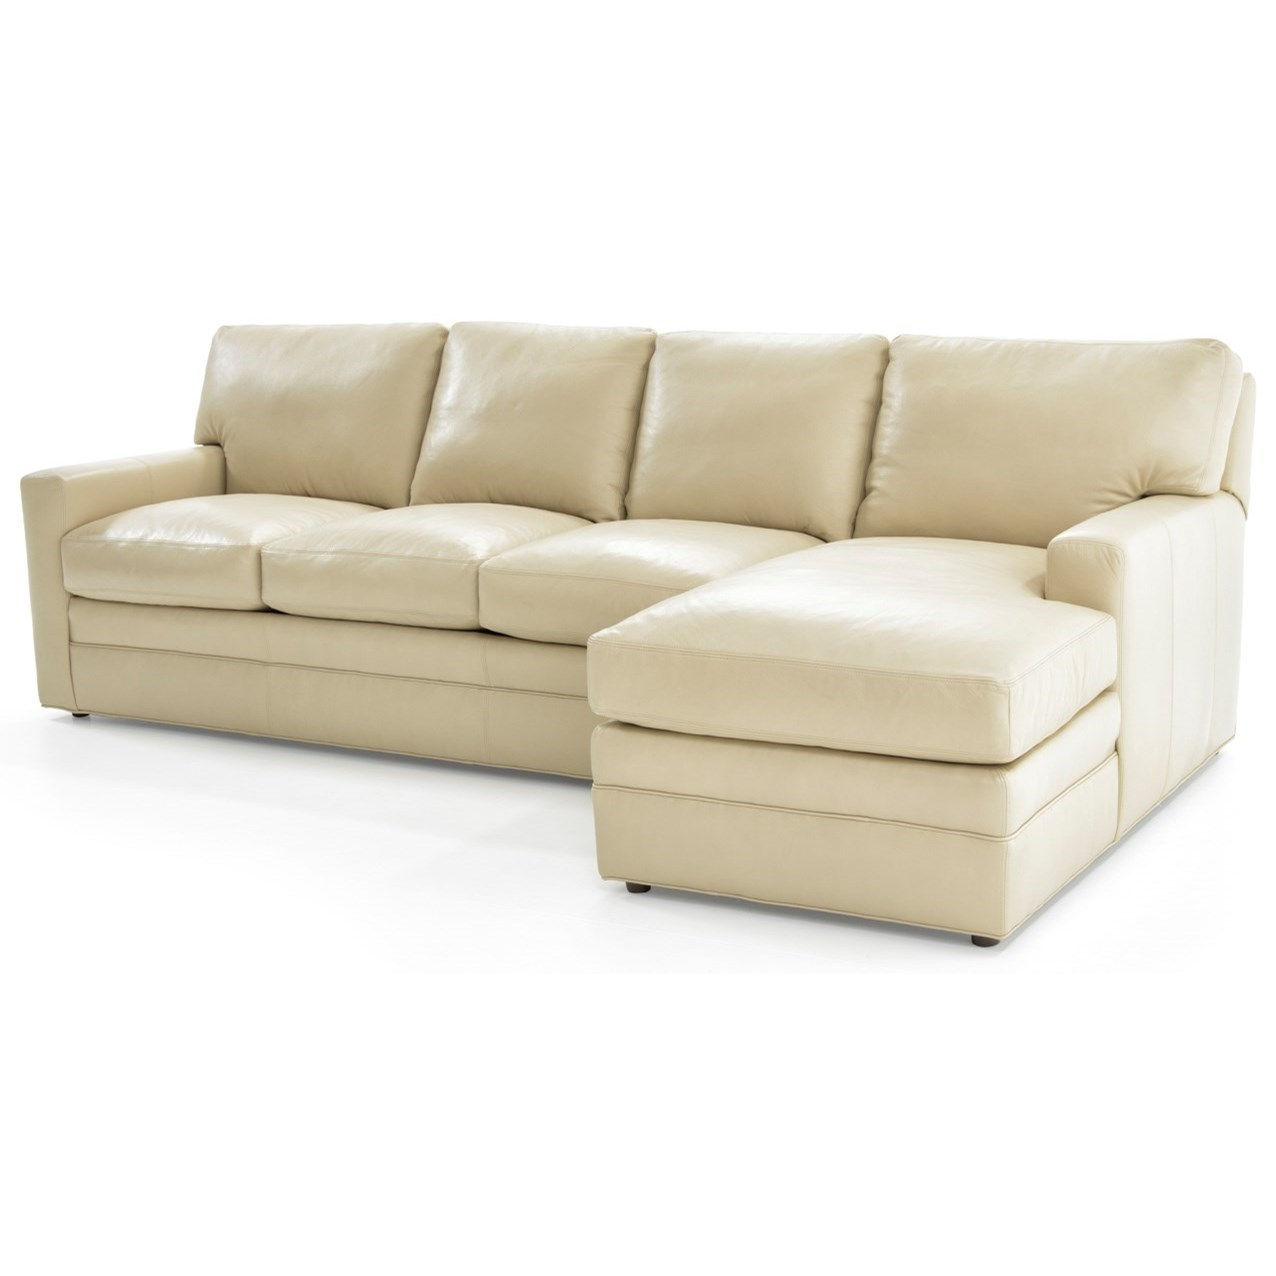 ... Whittemore Sherrill 4422 Pc L Shape Sectional Sofa W/ RAF Chaise ...